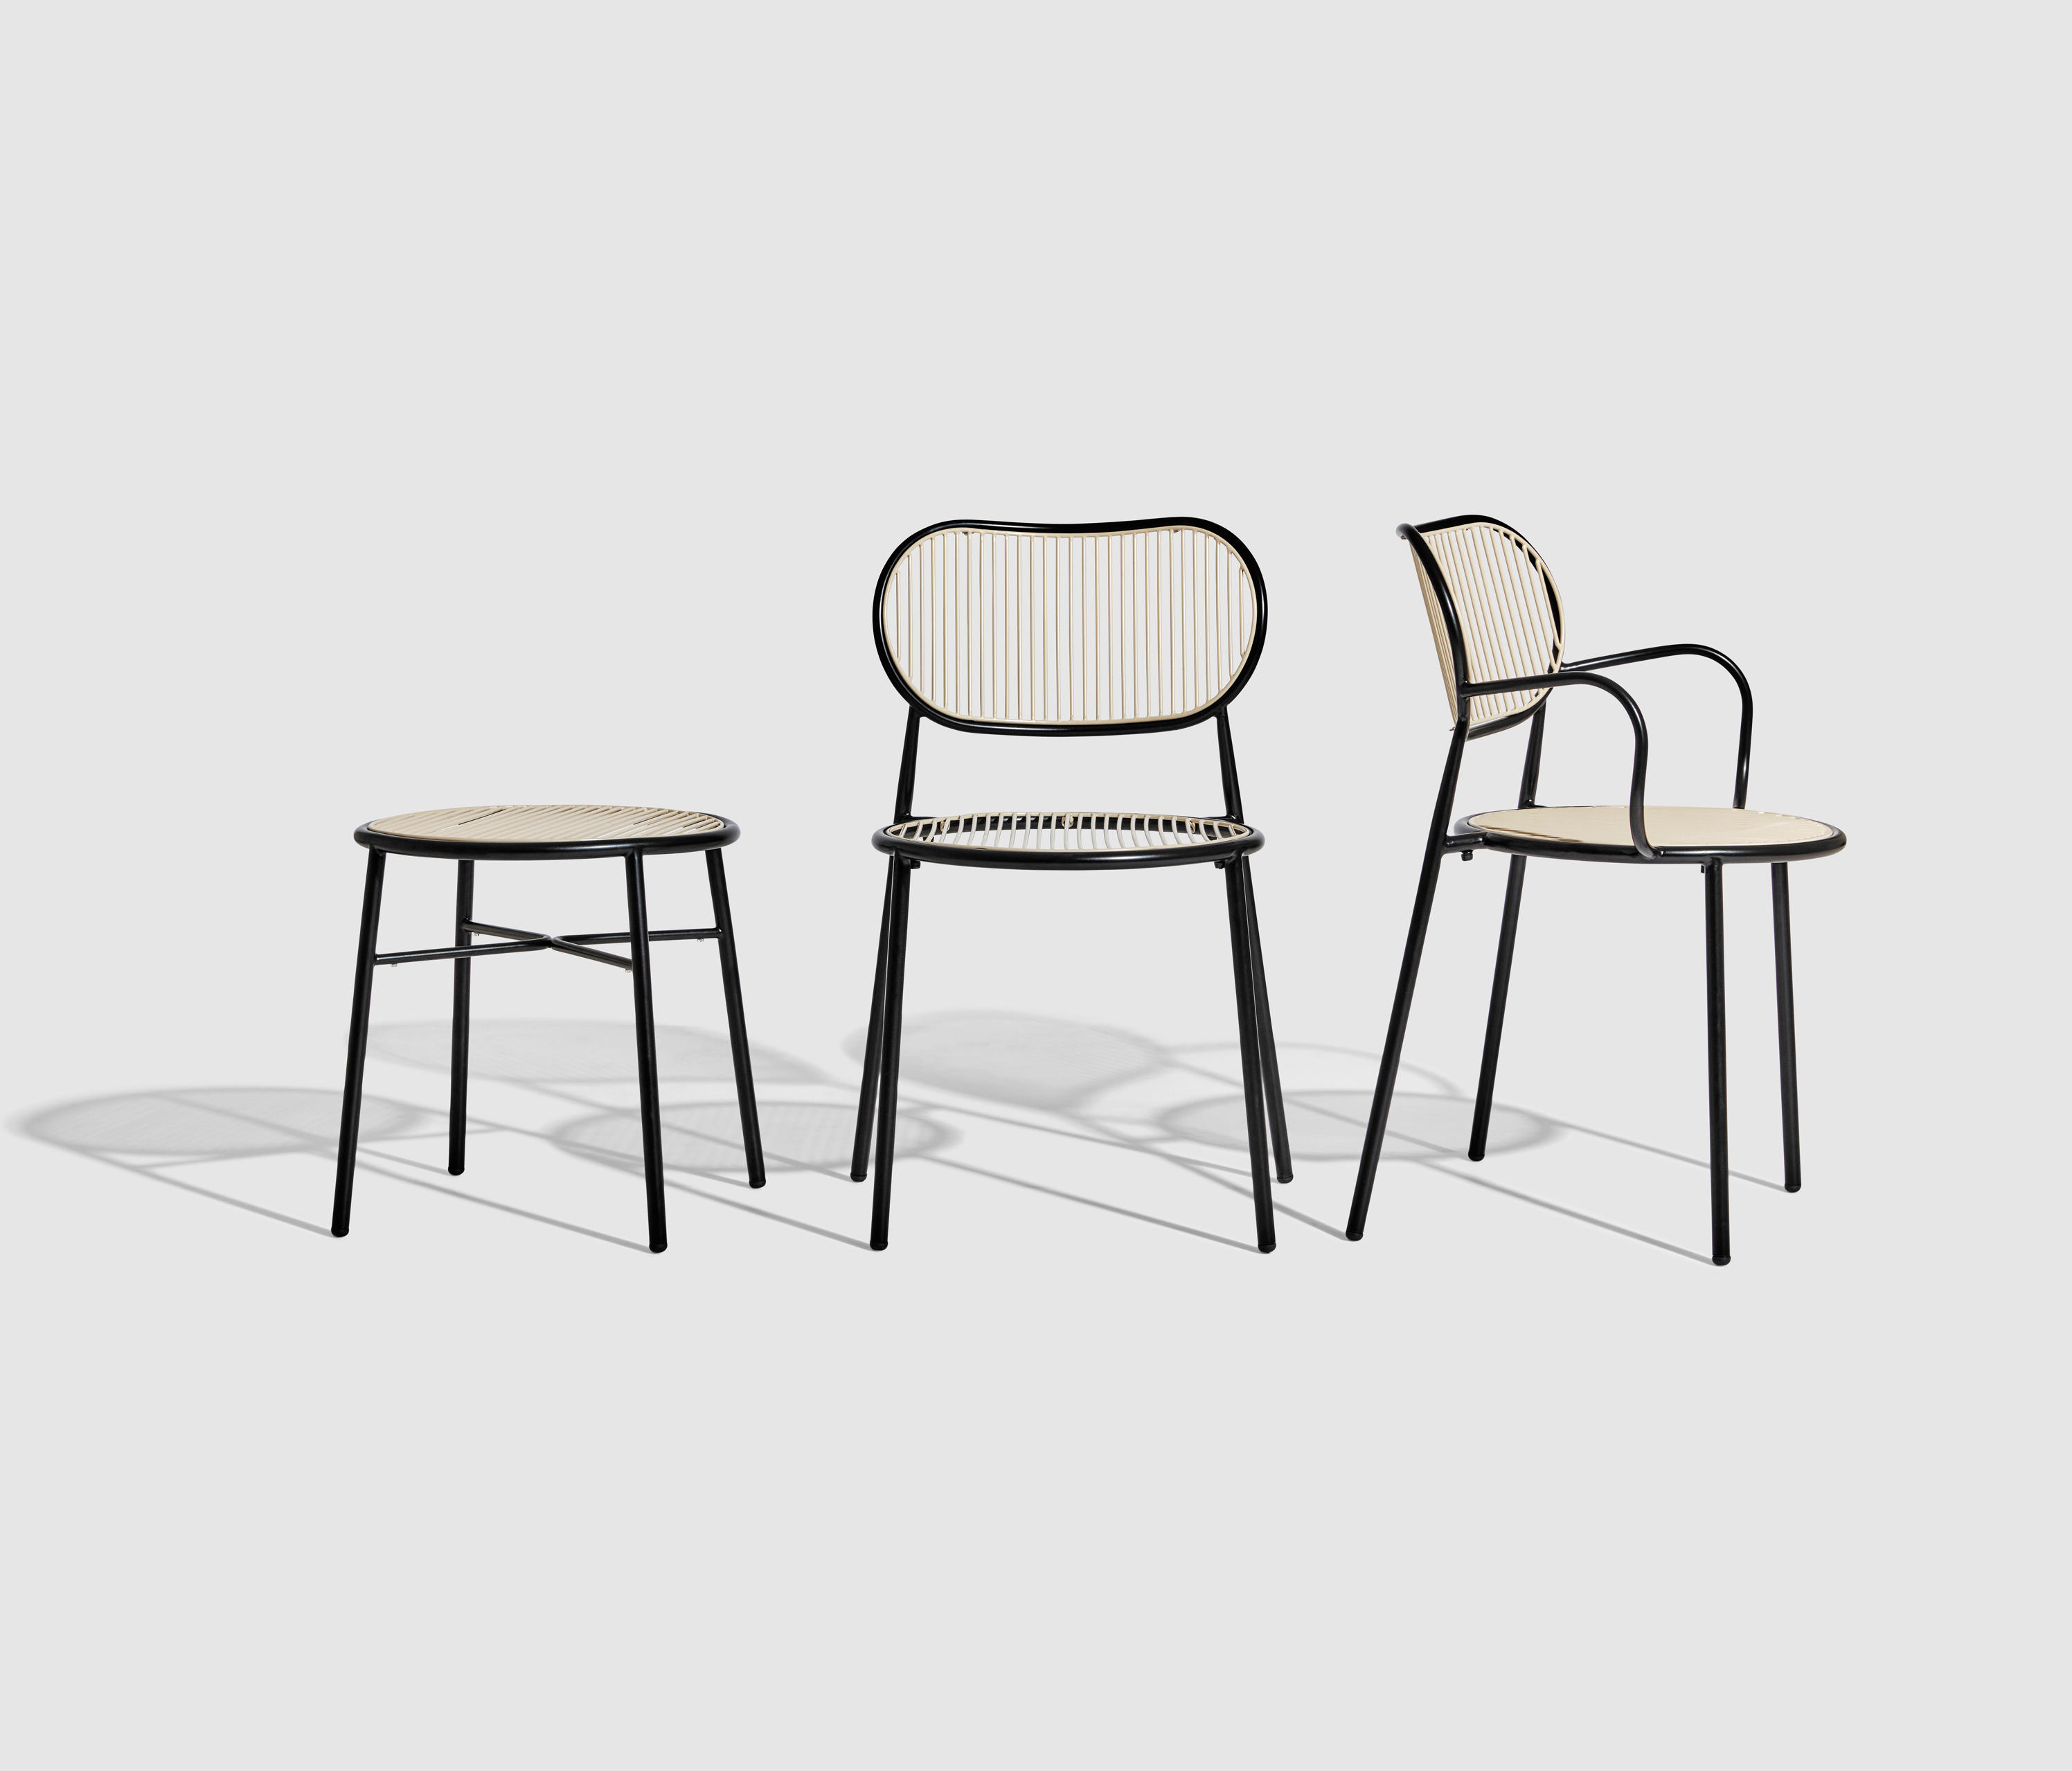 Sensational Piper Bar Stool Designer Furniture Architonic Gmtry Best Dining Table And Chair Ideas Images Gmtryco